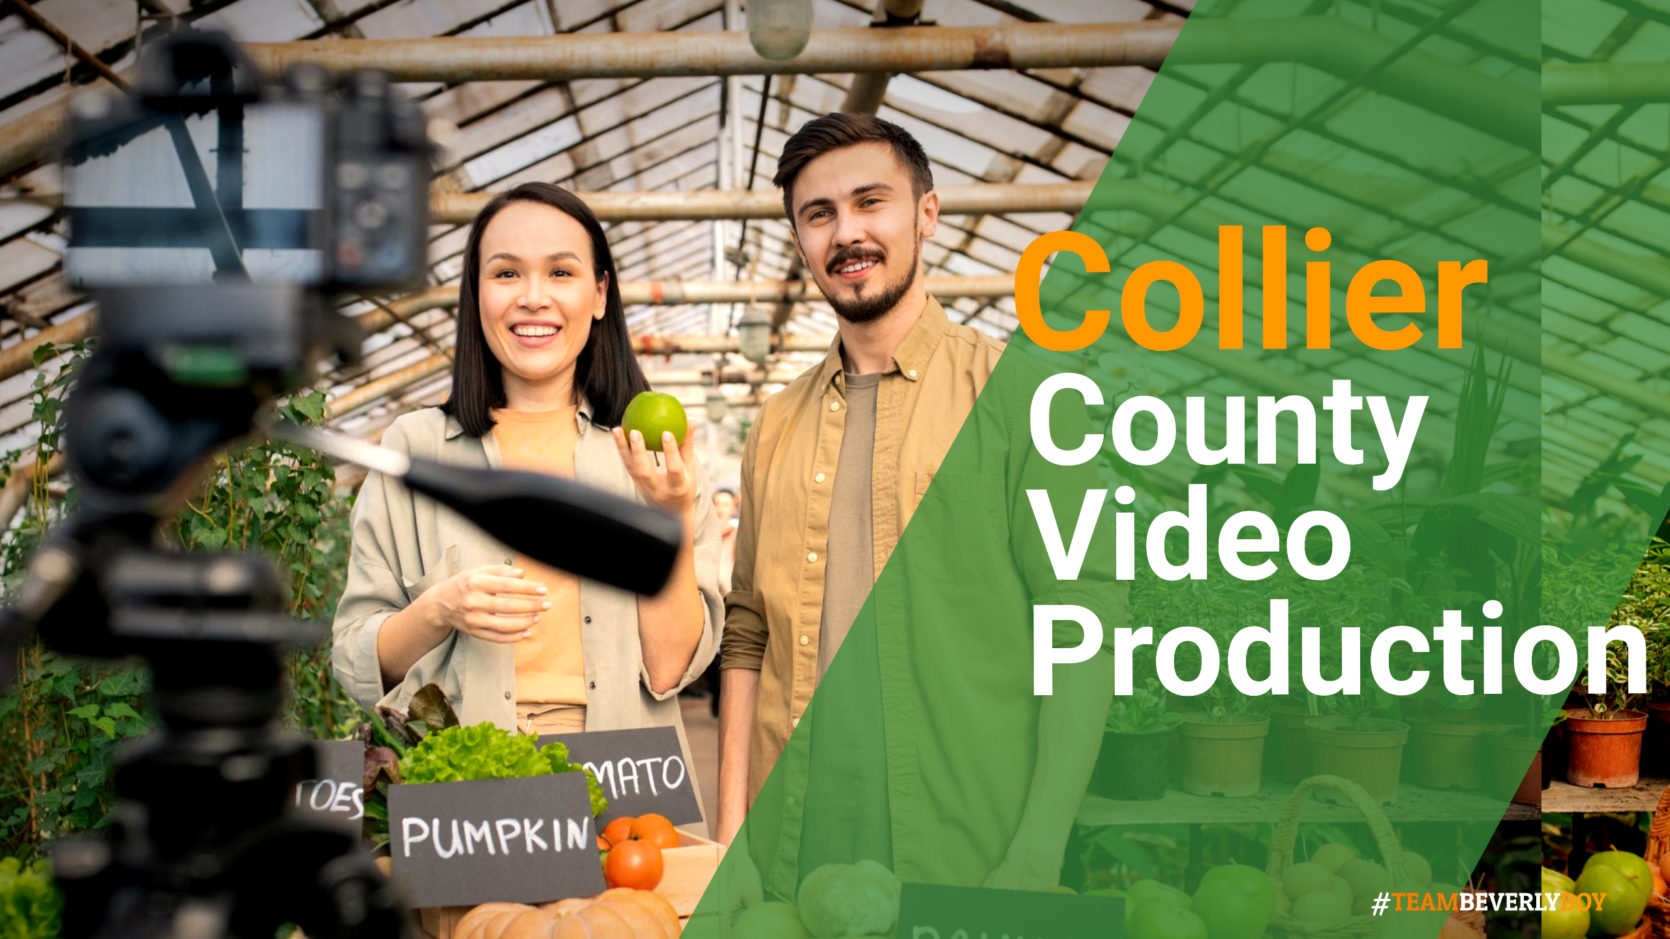 Collier County Video Production